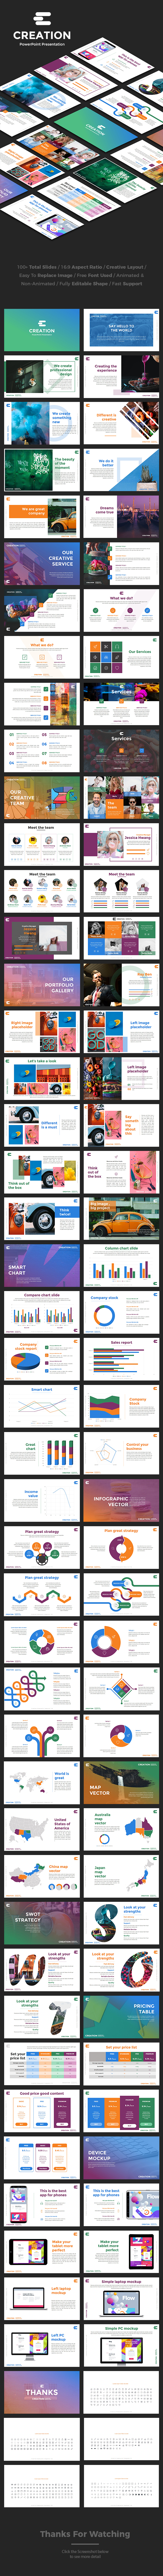 Creation Powerpoint Presentation - Business PowerPoint Templates